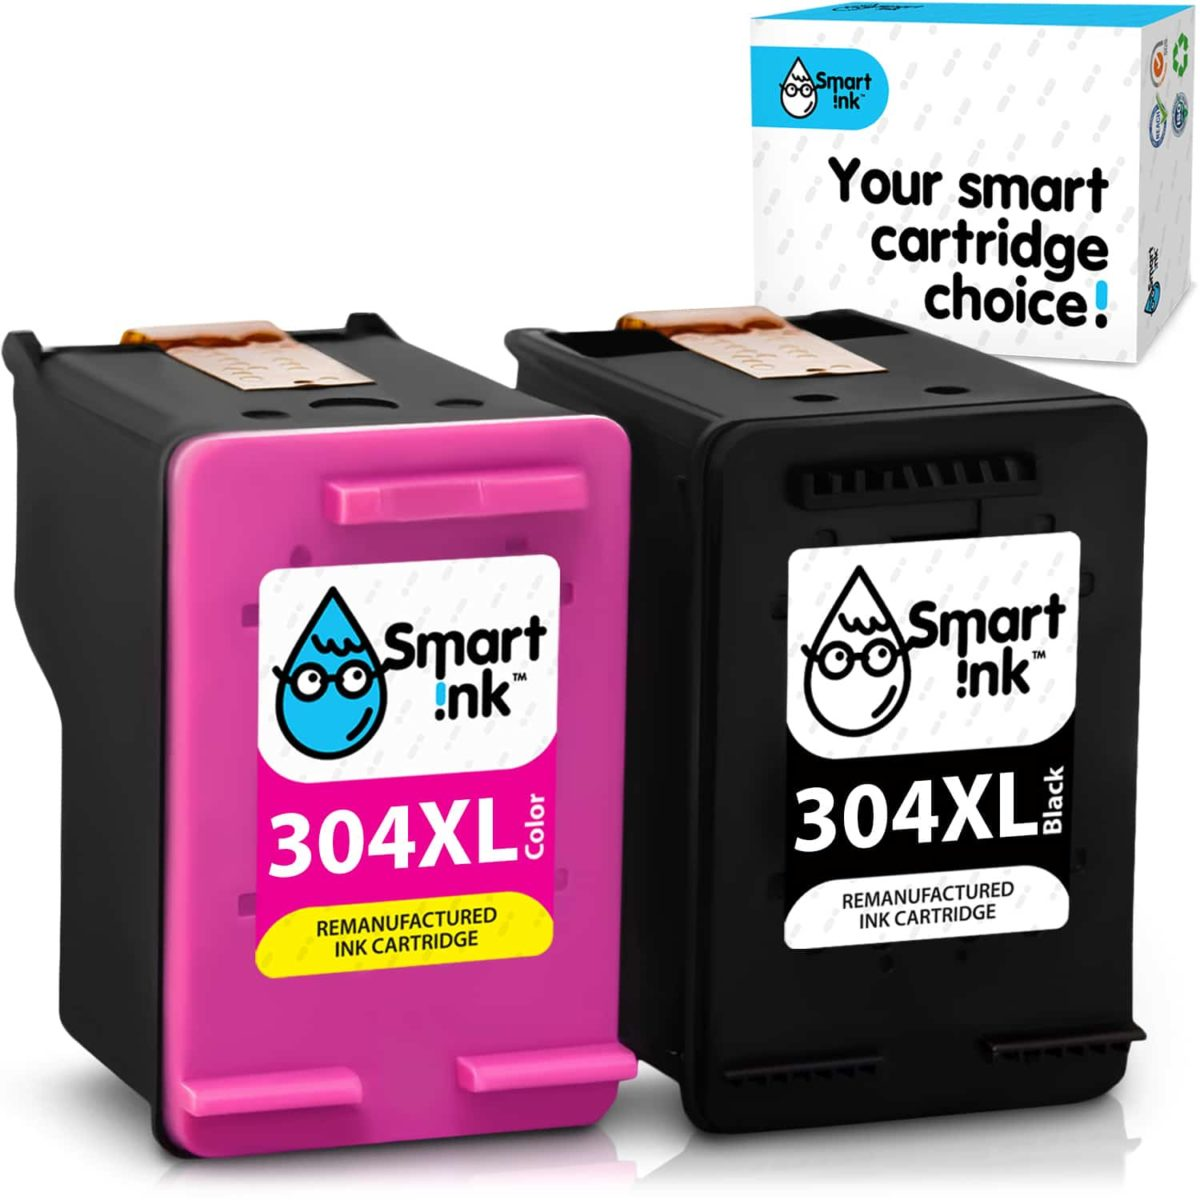 304XL. Smart Ink Cartridge Replacement for HP 304 XL (2 pack), Remanufactured